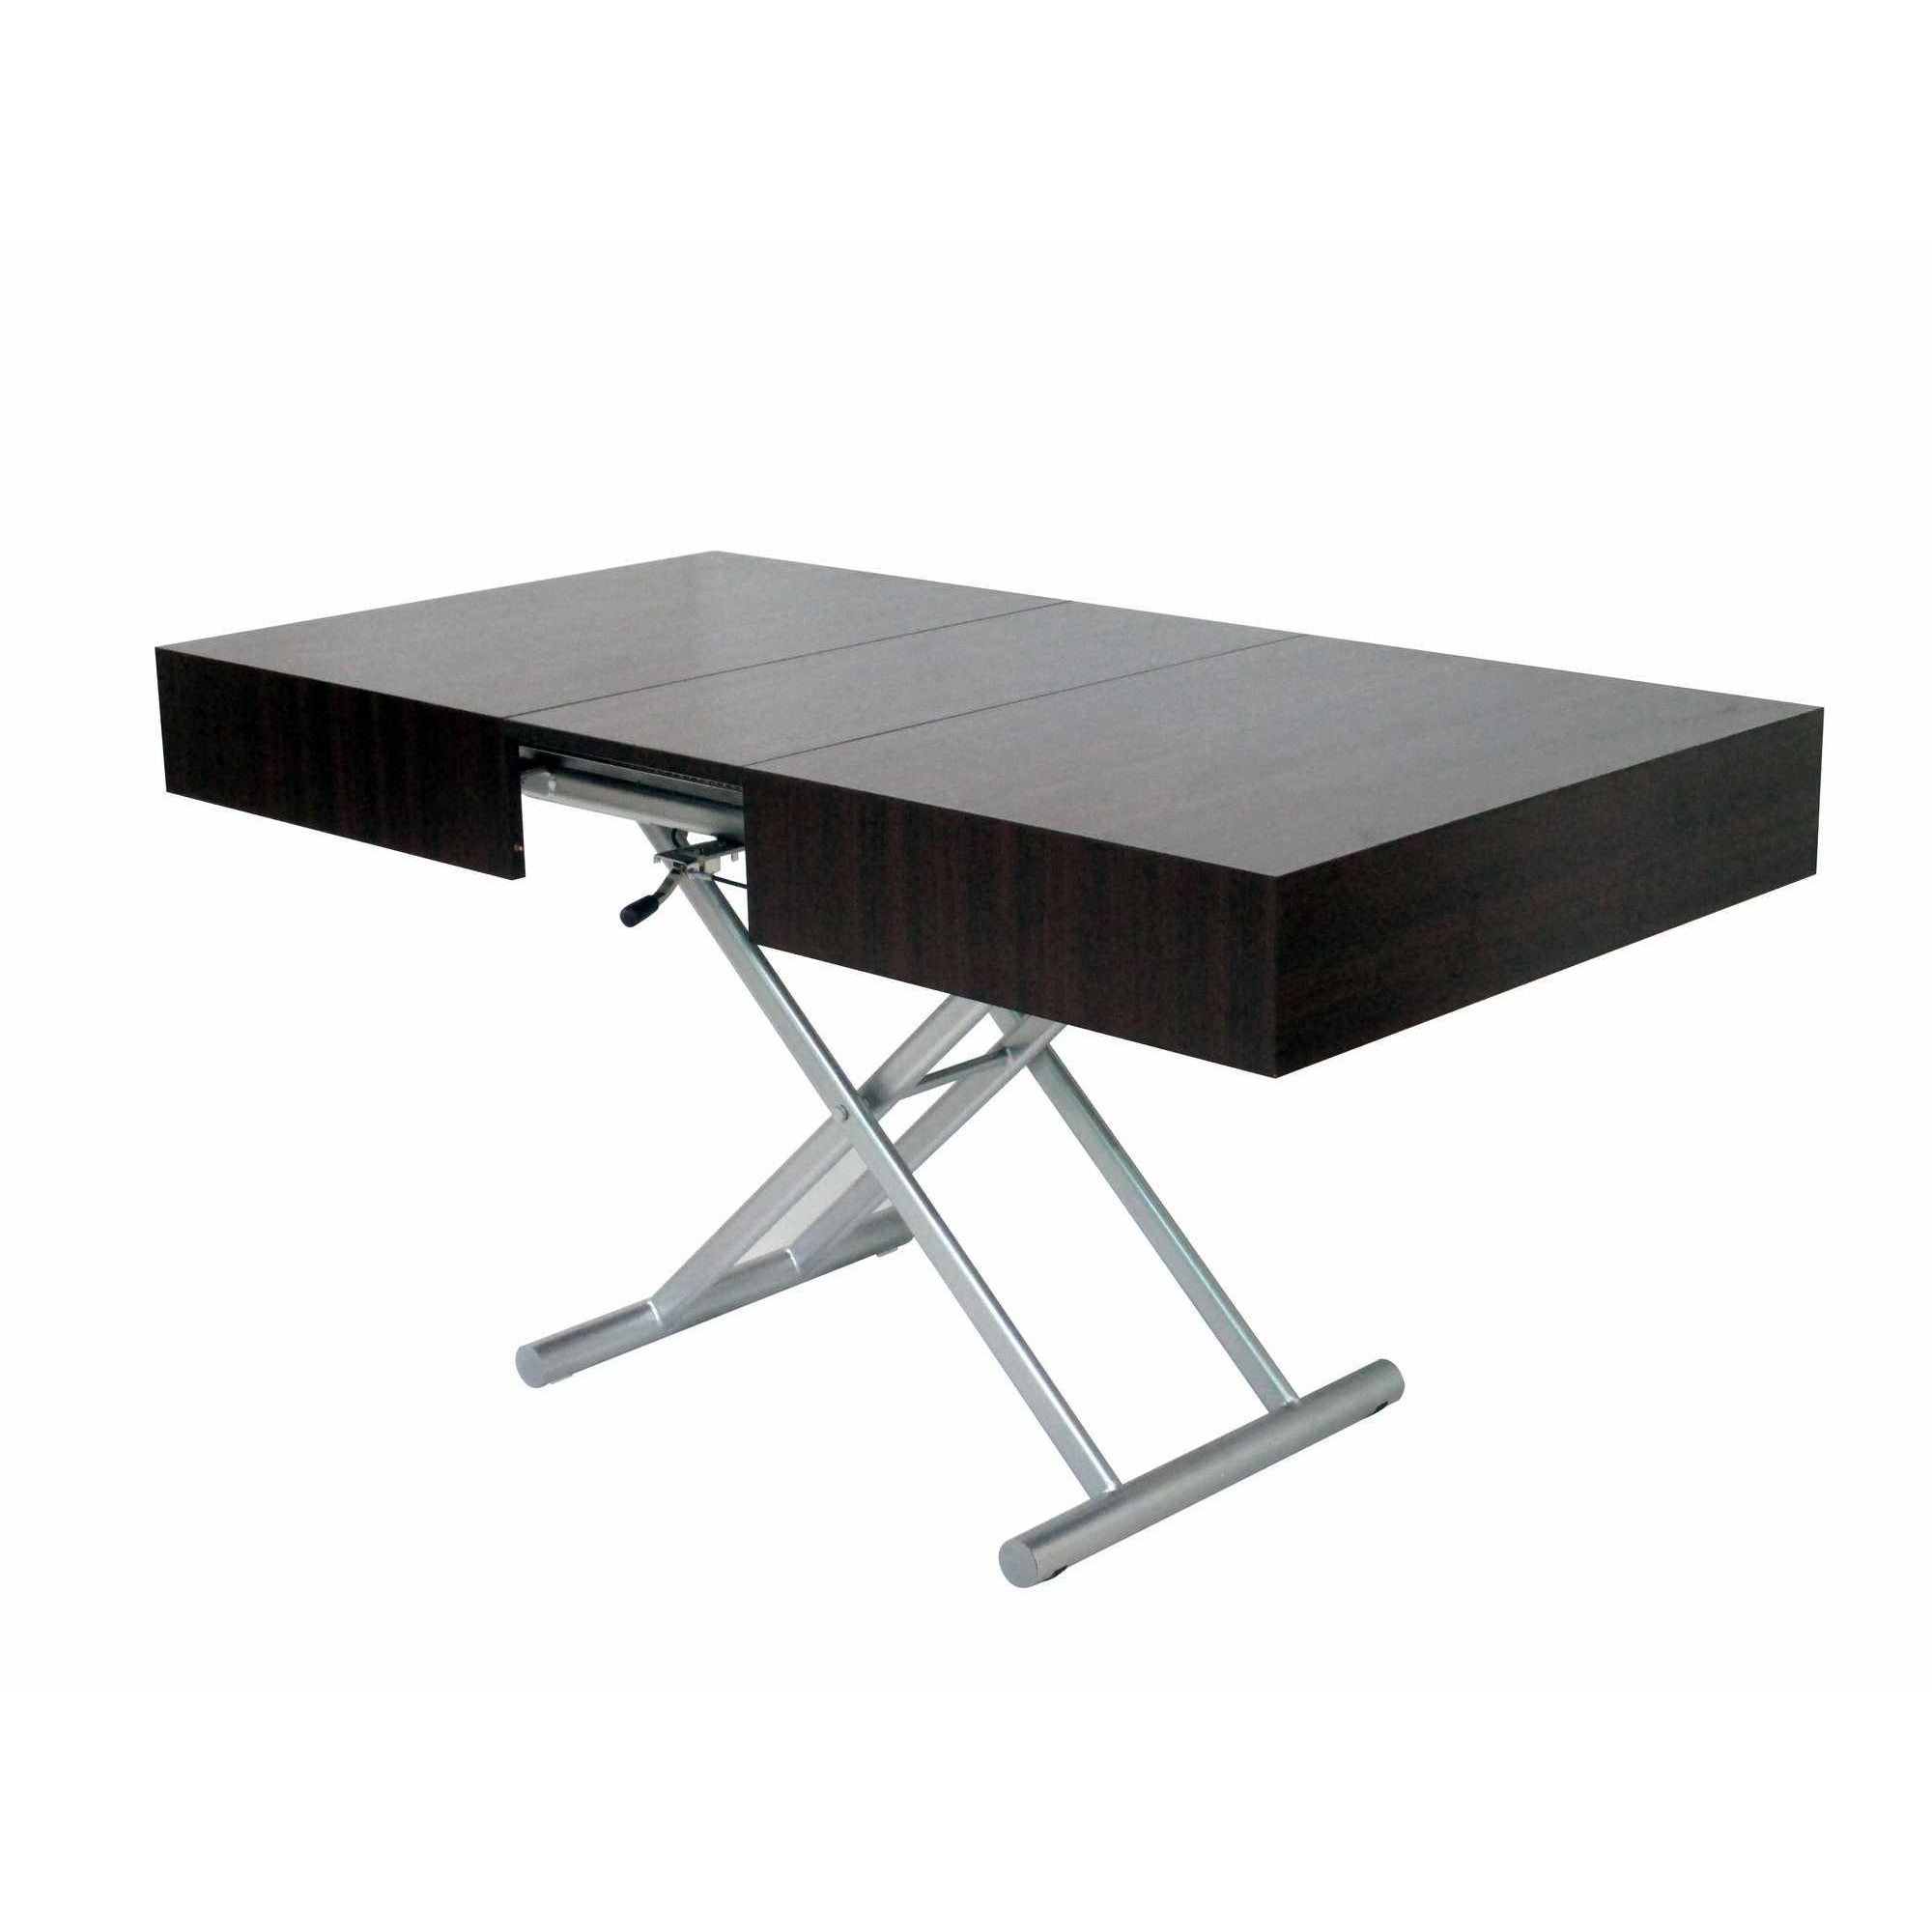 Deco in paris table basse relevable extensible wenge for Table basse relevable wenge